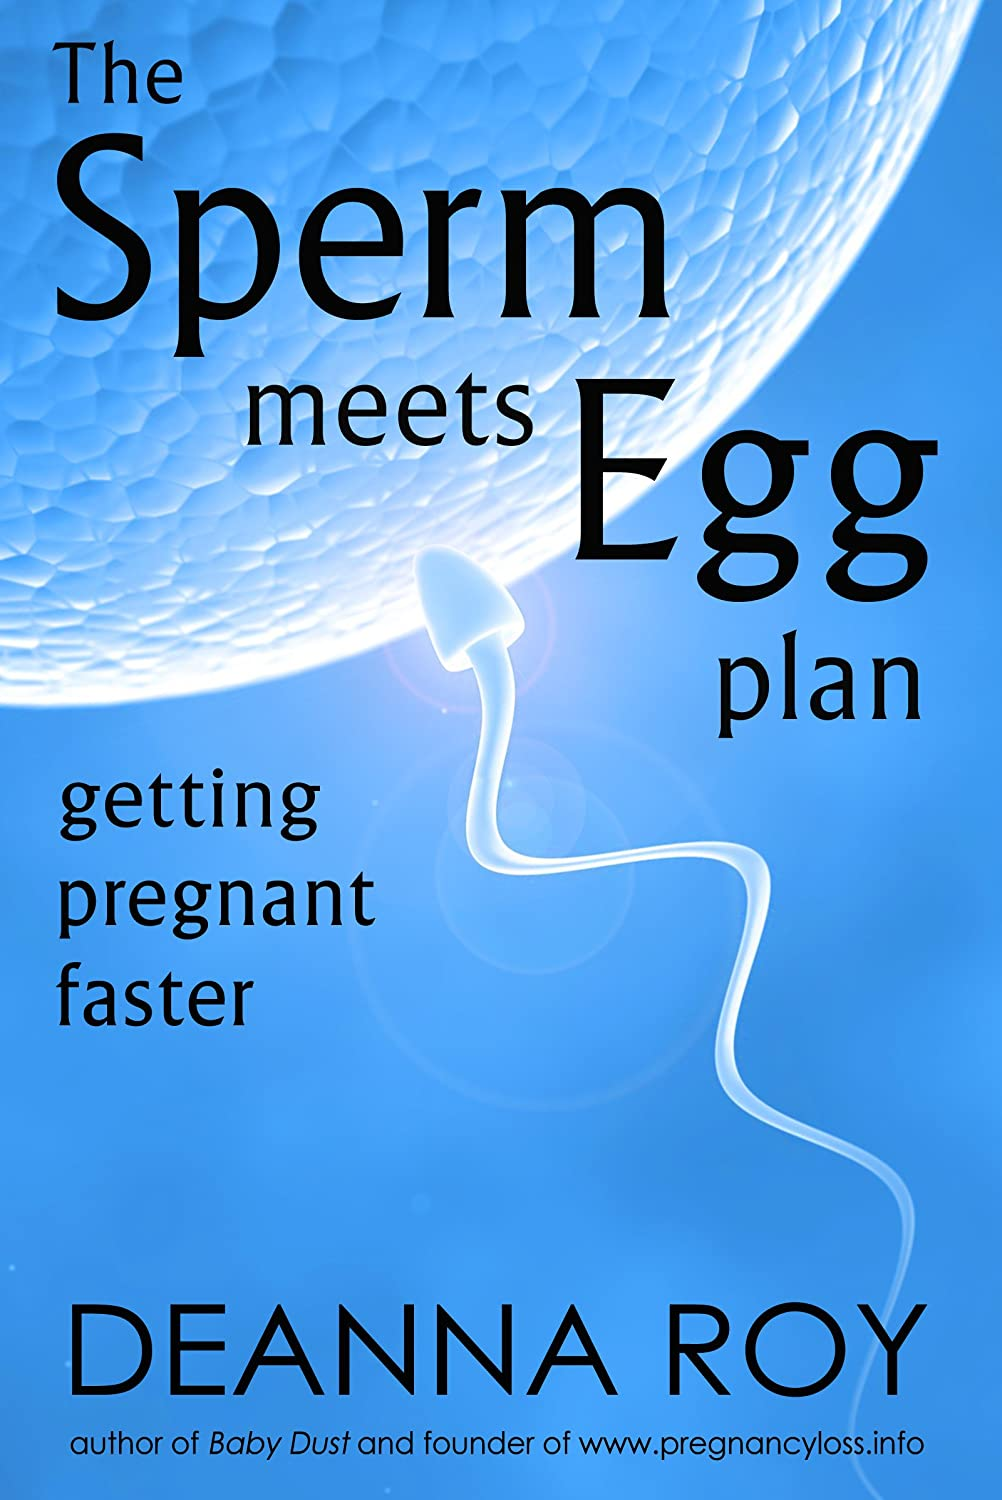 Image: The Sperm Meets Egg Plan: Getting Pregnant Faster, by Deanna Roy. Published: Casey Shay Press (October 9, 2012)